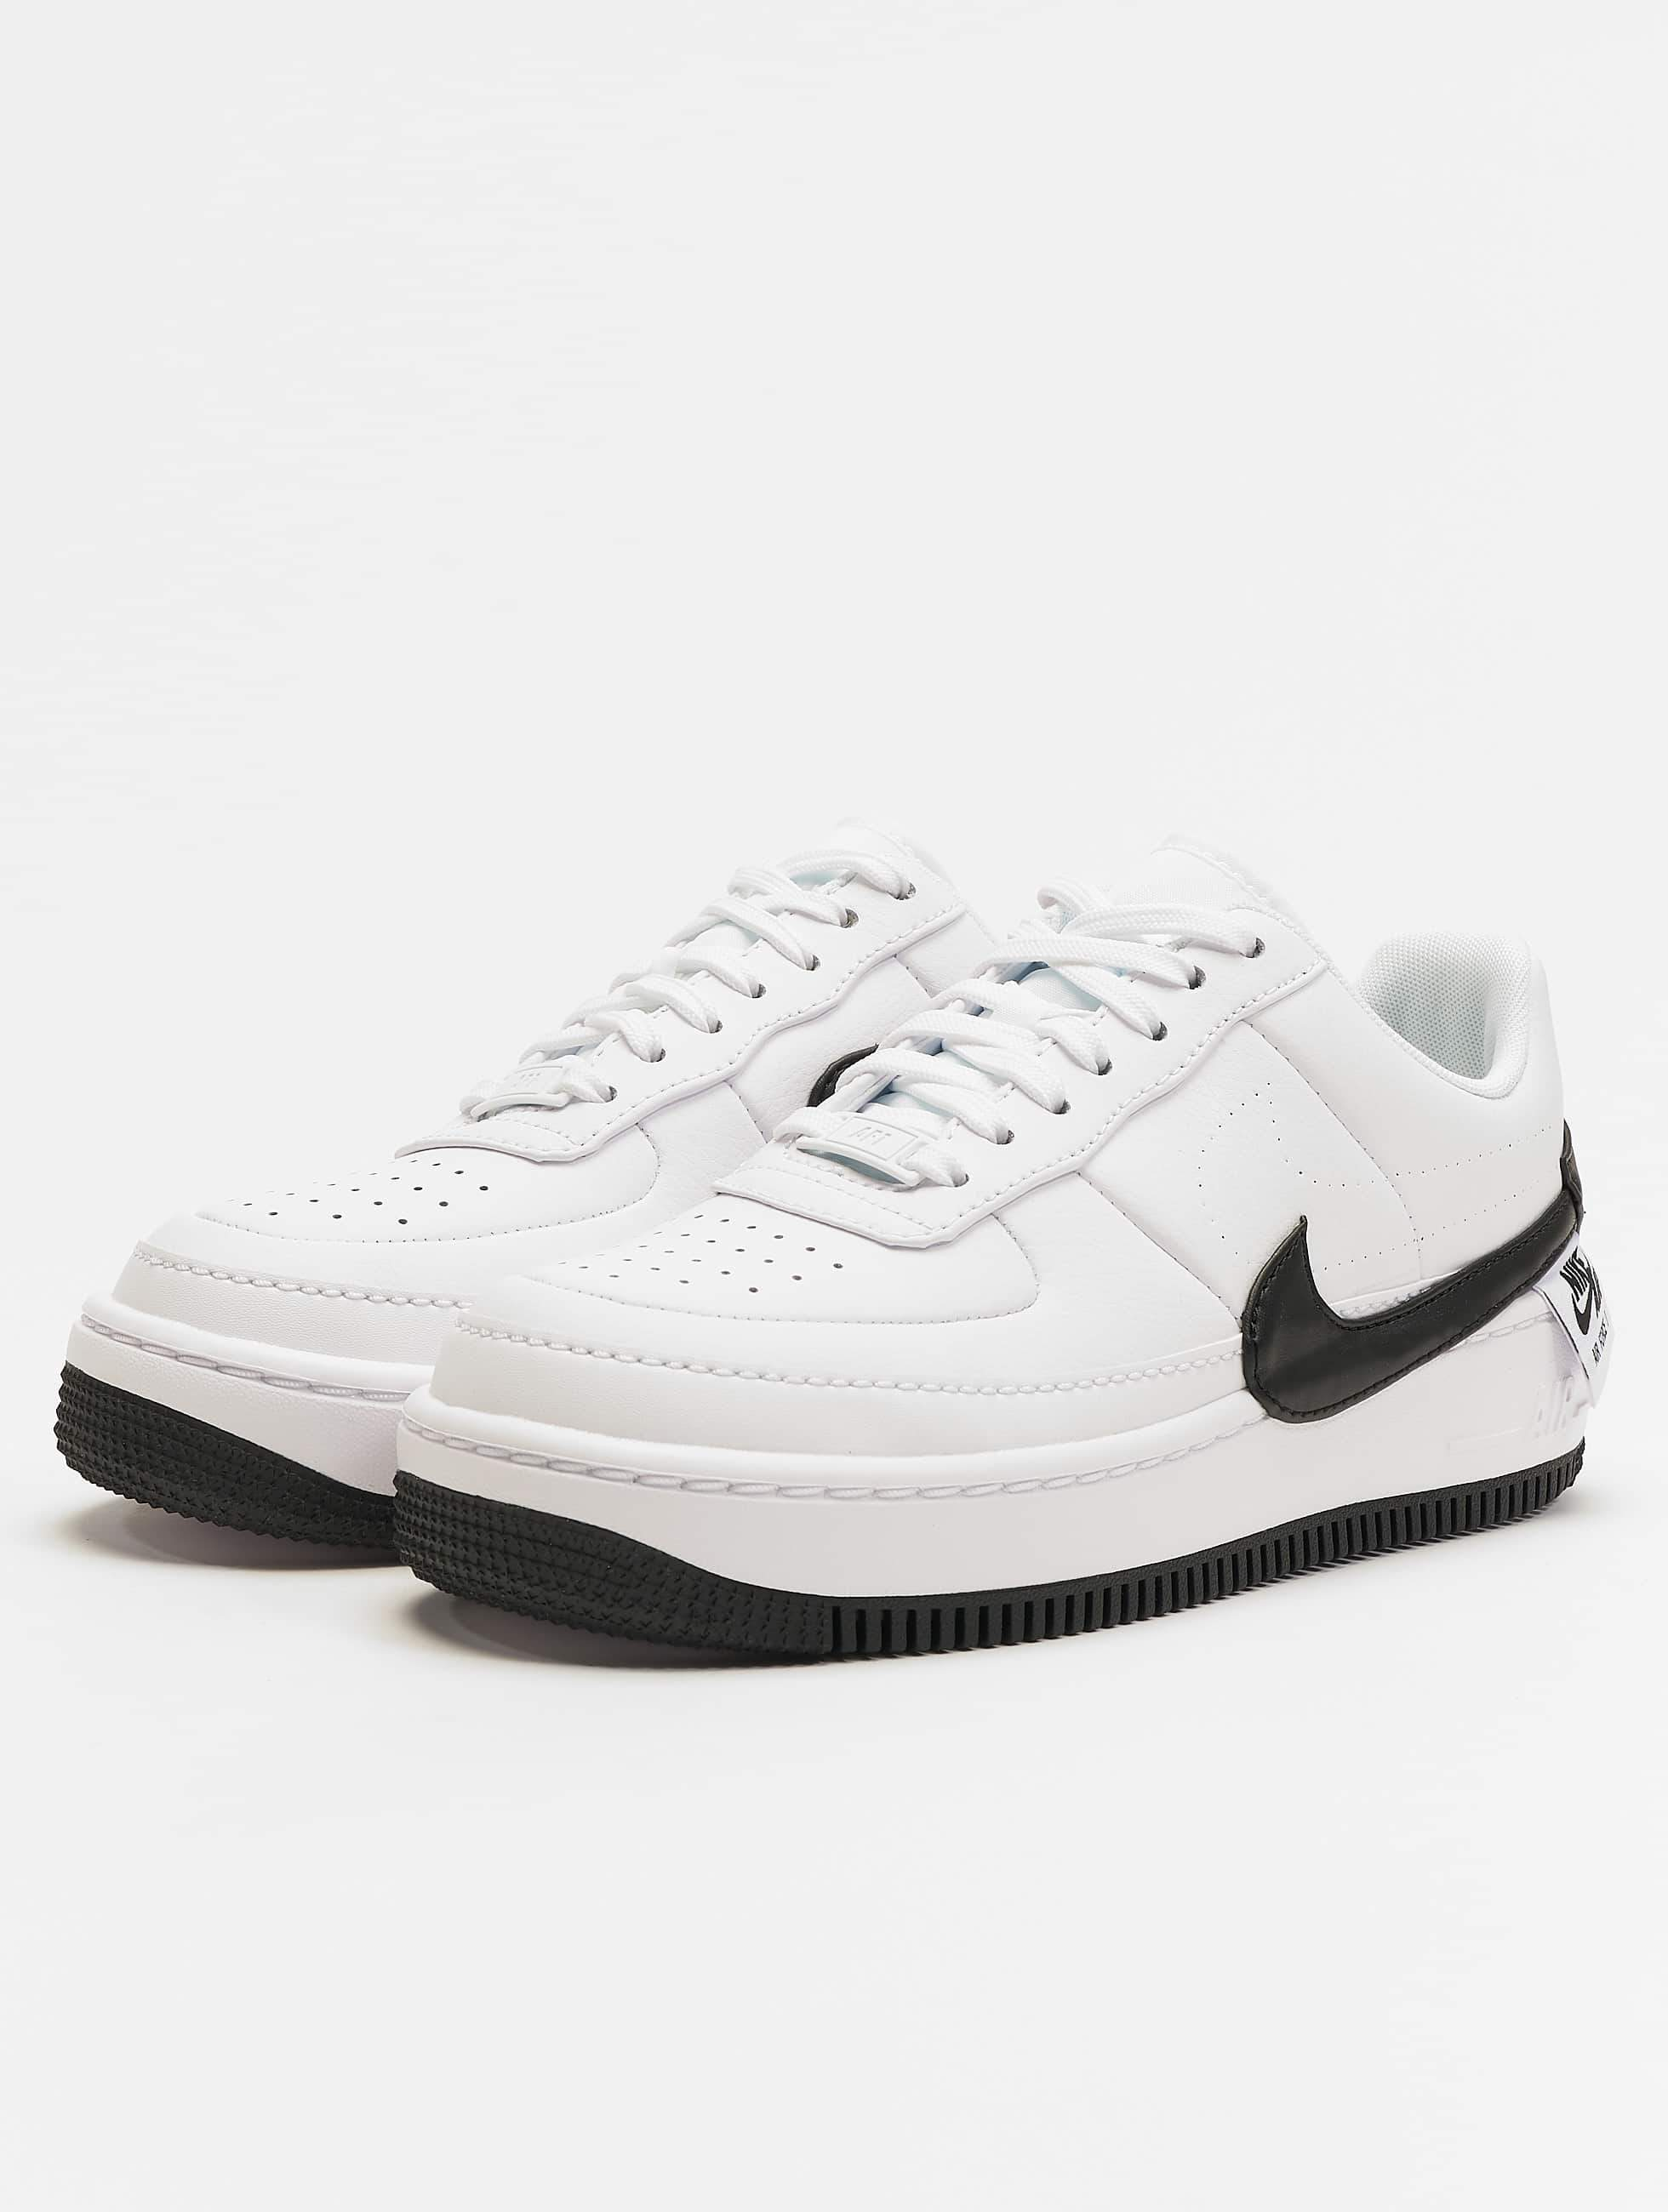 cbed8f17191 Nike schoen / sneaker Air Force 1 Jester Xx in wit 539263